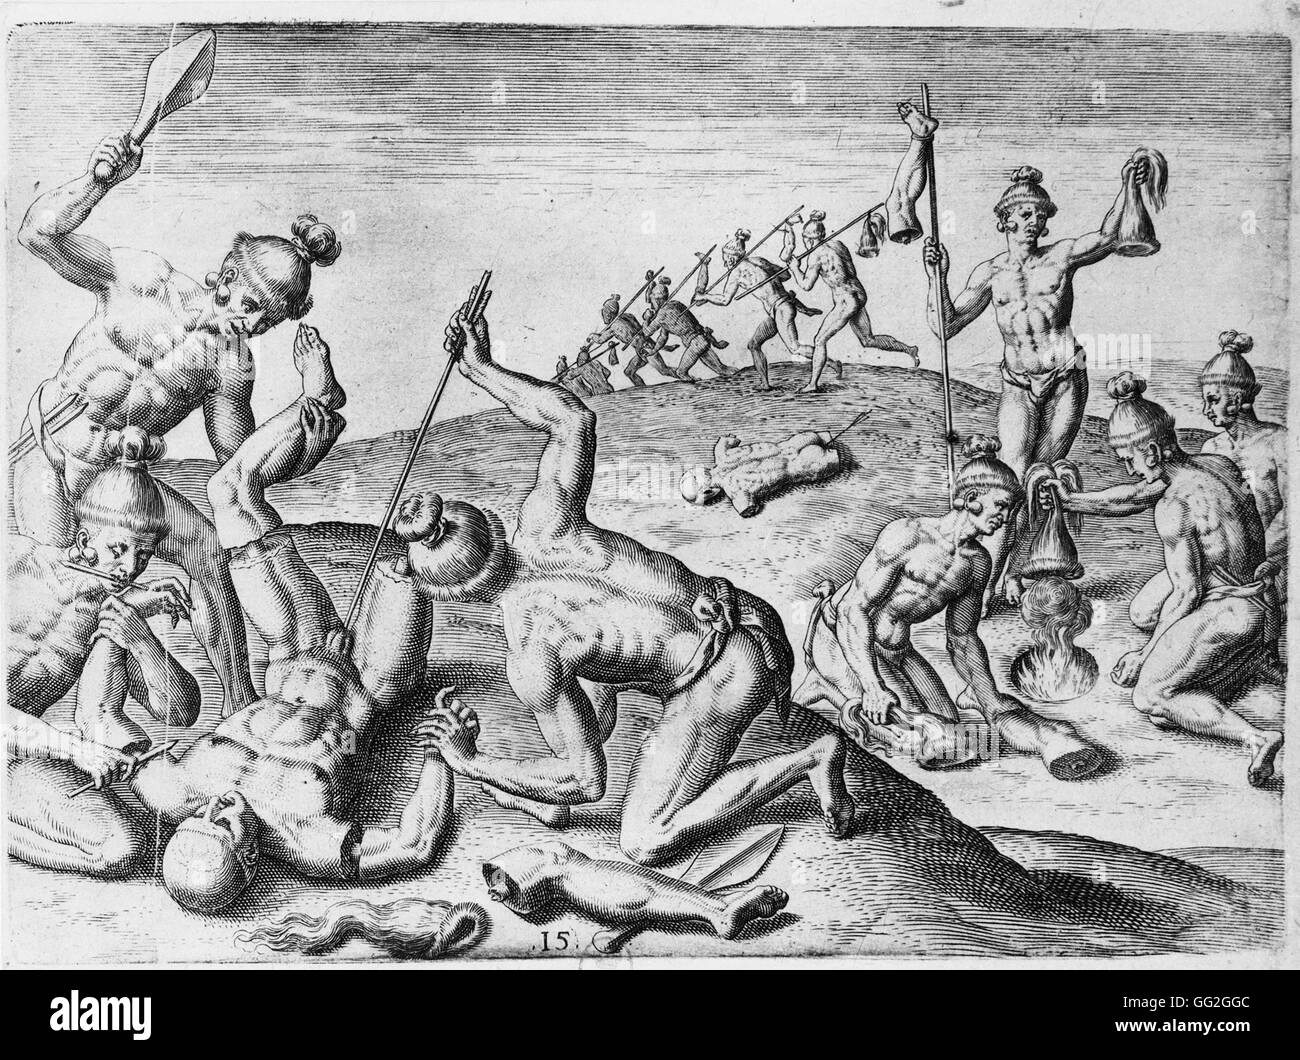 Théodore de Bry, engraver. After the drawings by Jacques Le Moyne de Morgues Scalping and mutilation of the - Stock Image